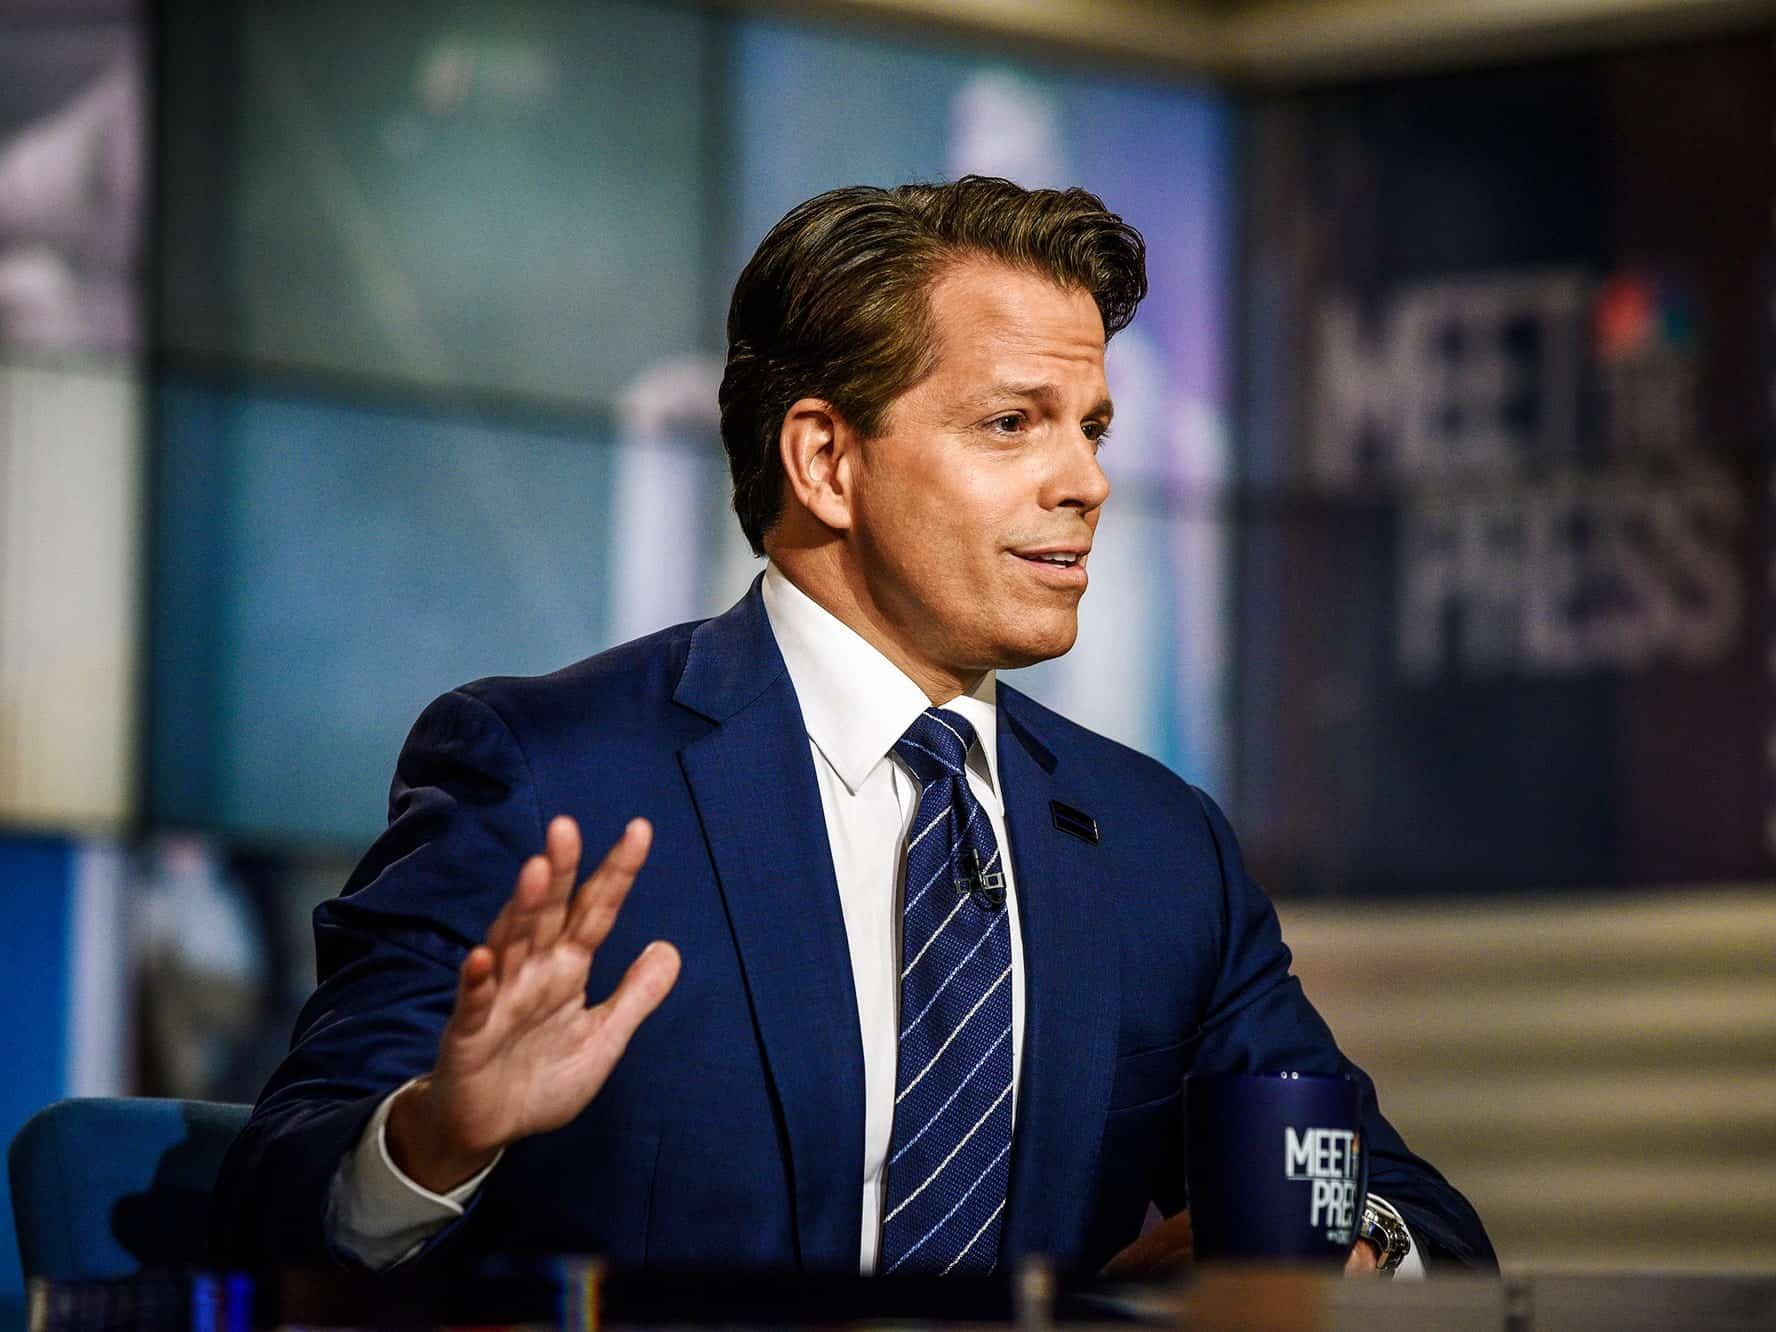 Anthony-Scaramucci-